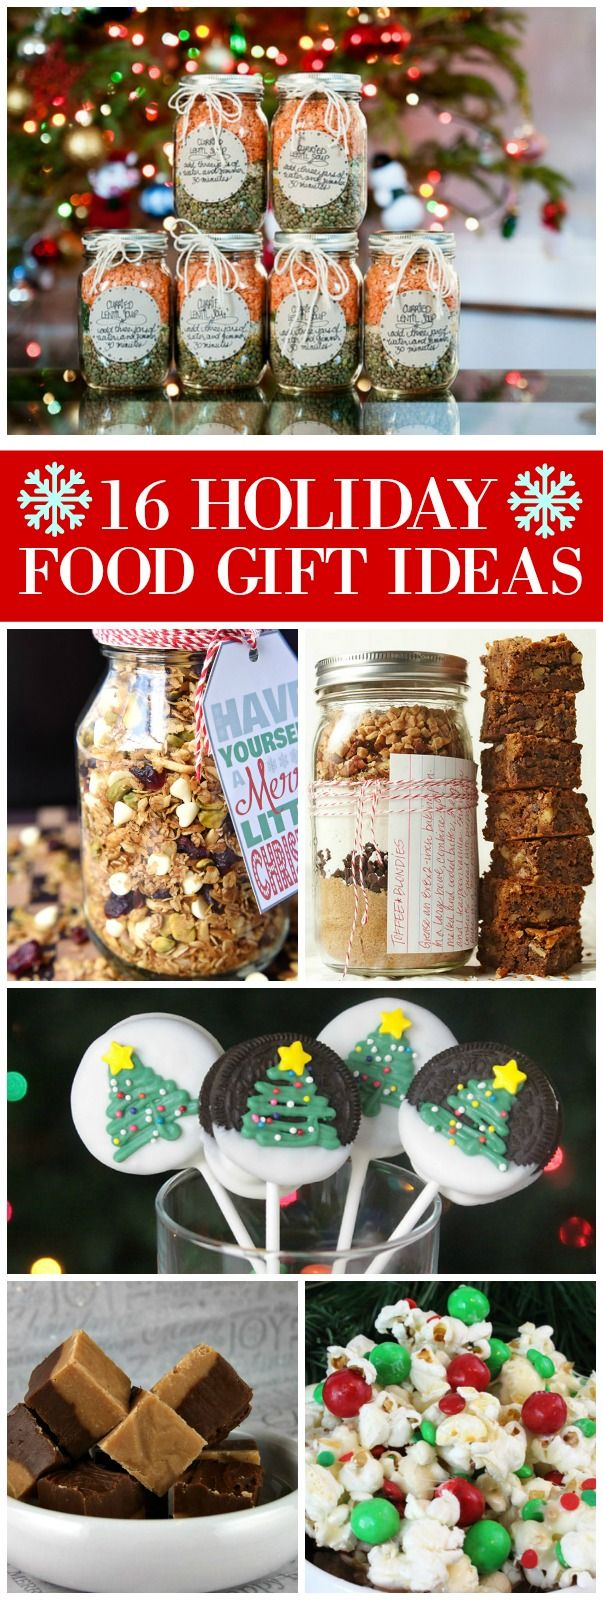 16 Holiday Food Gift Ideas (recipes included!): soup mix in a jar, cookies in a ...